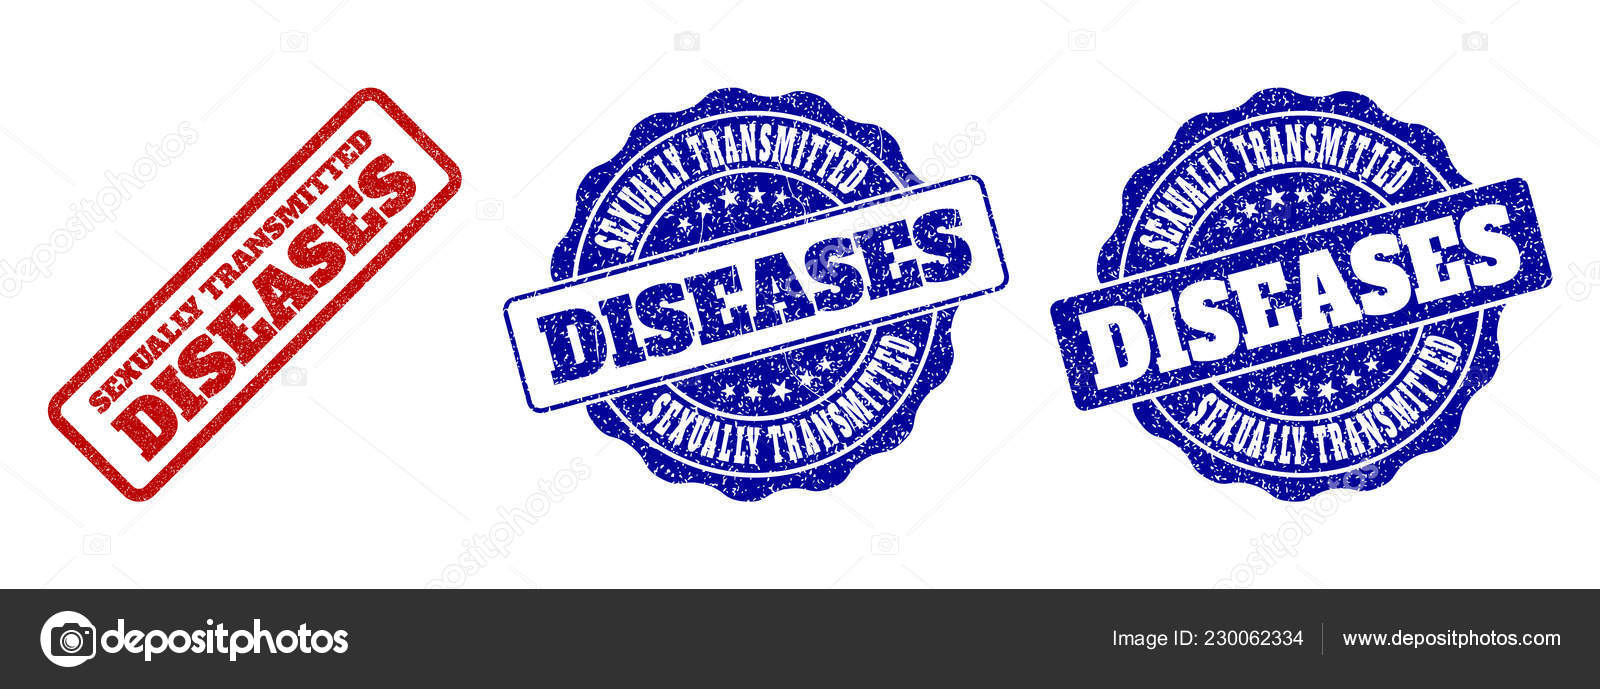 Sexually transmitted diseases pictures for labels